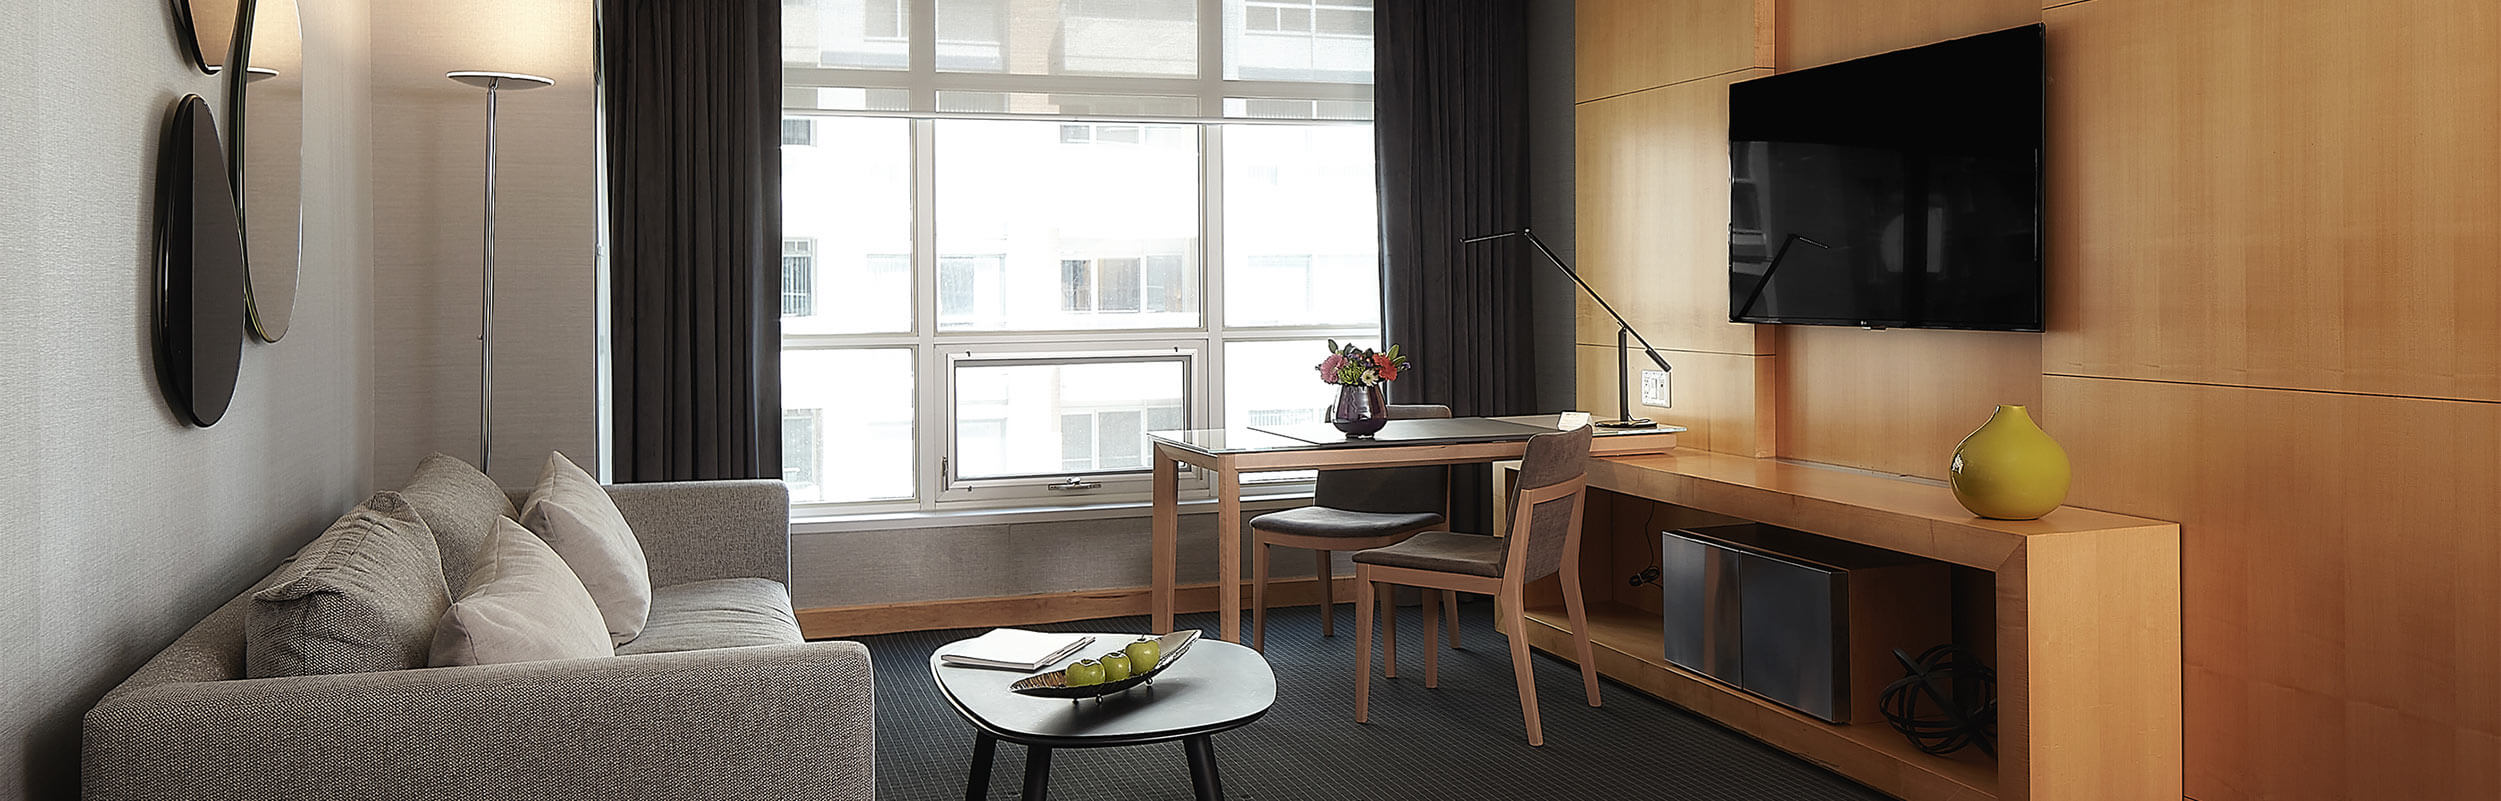 Premier Luxury Room at The SoHo Hotel